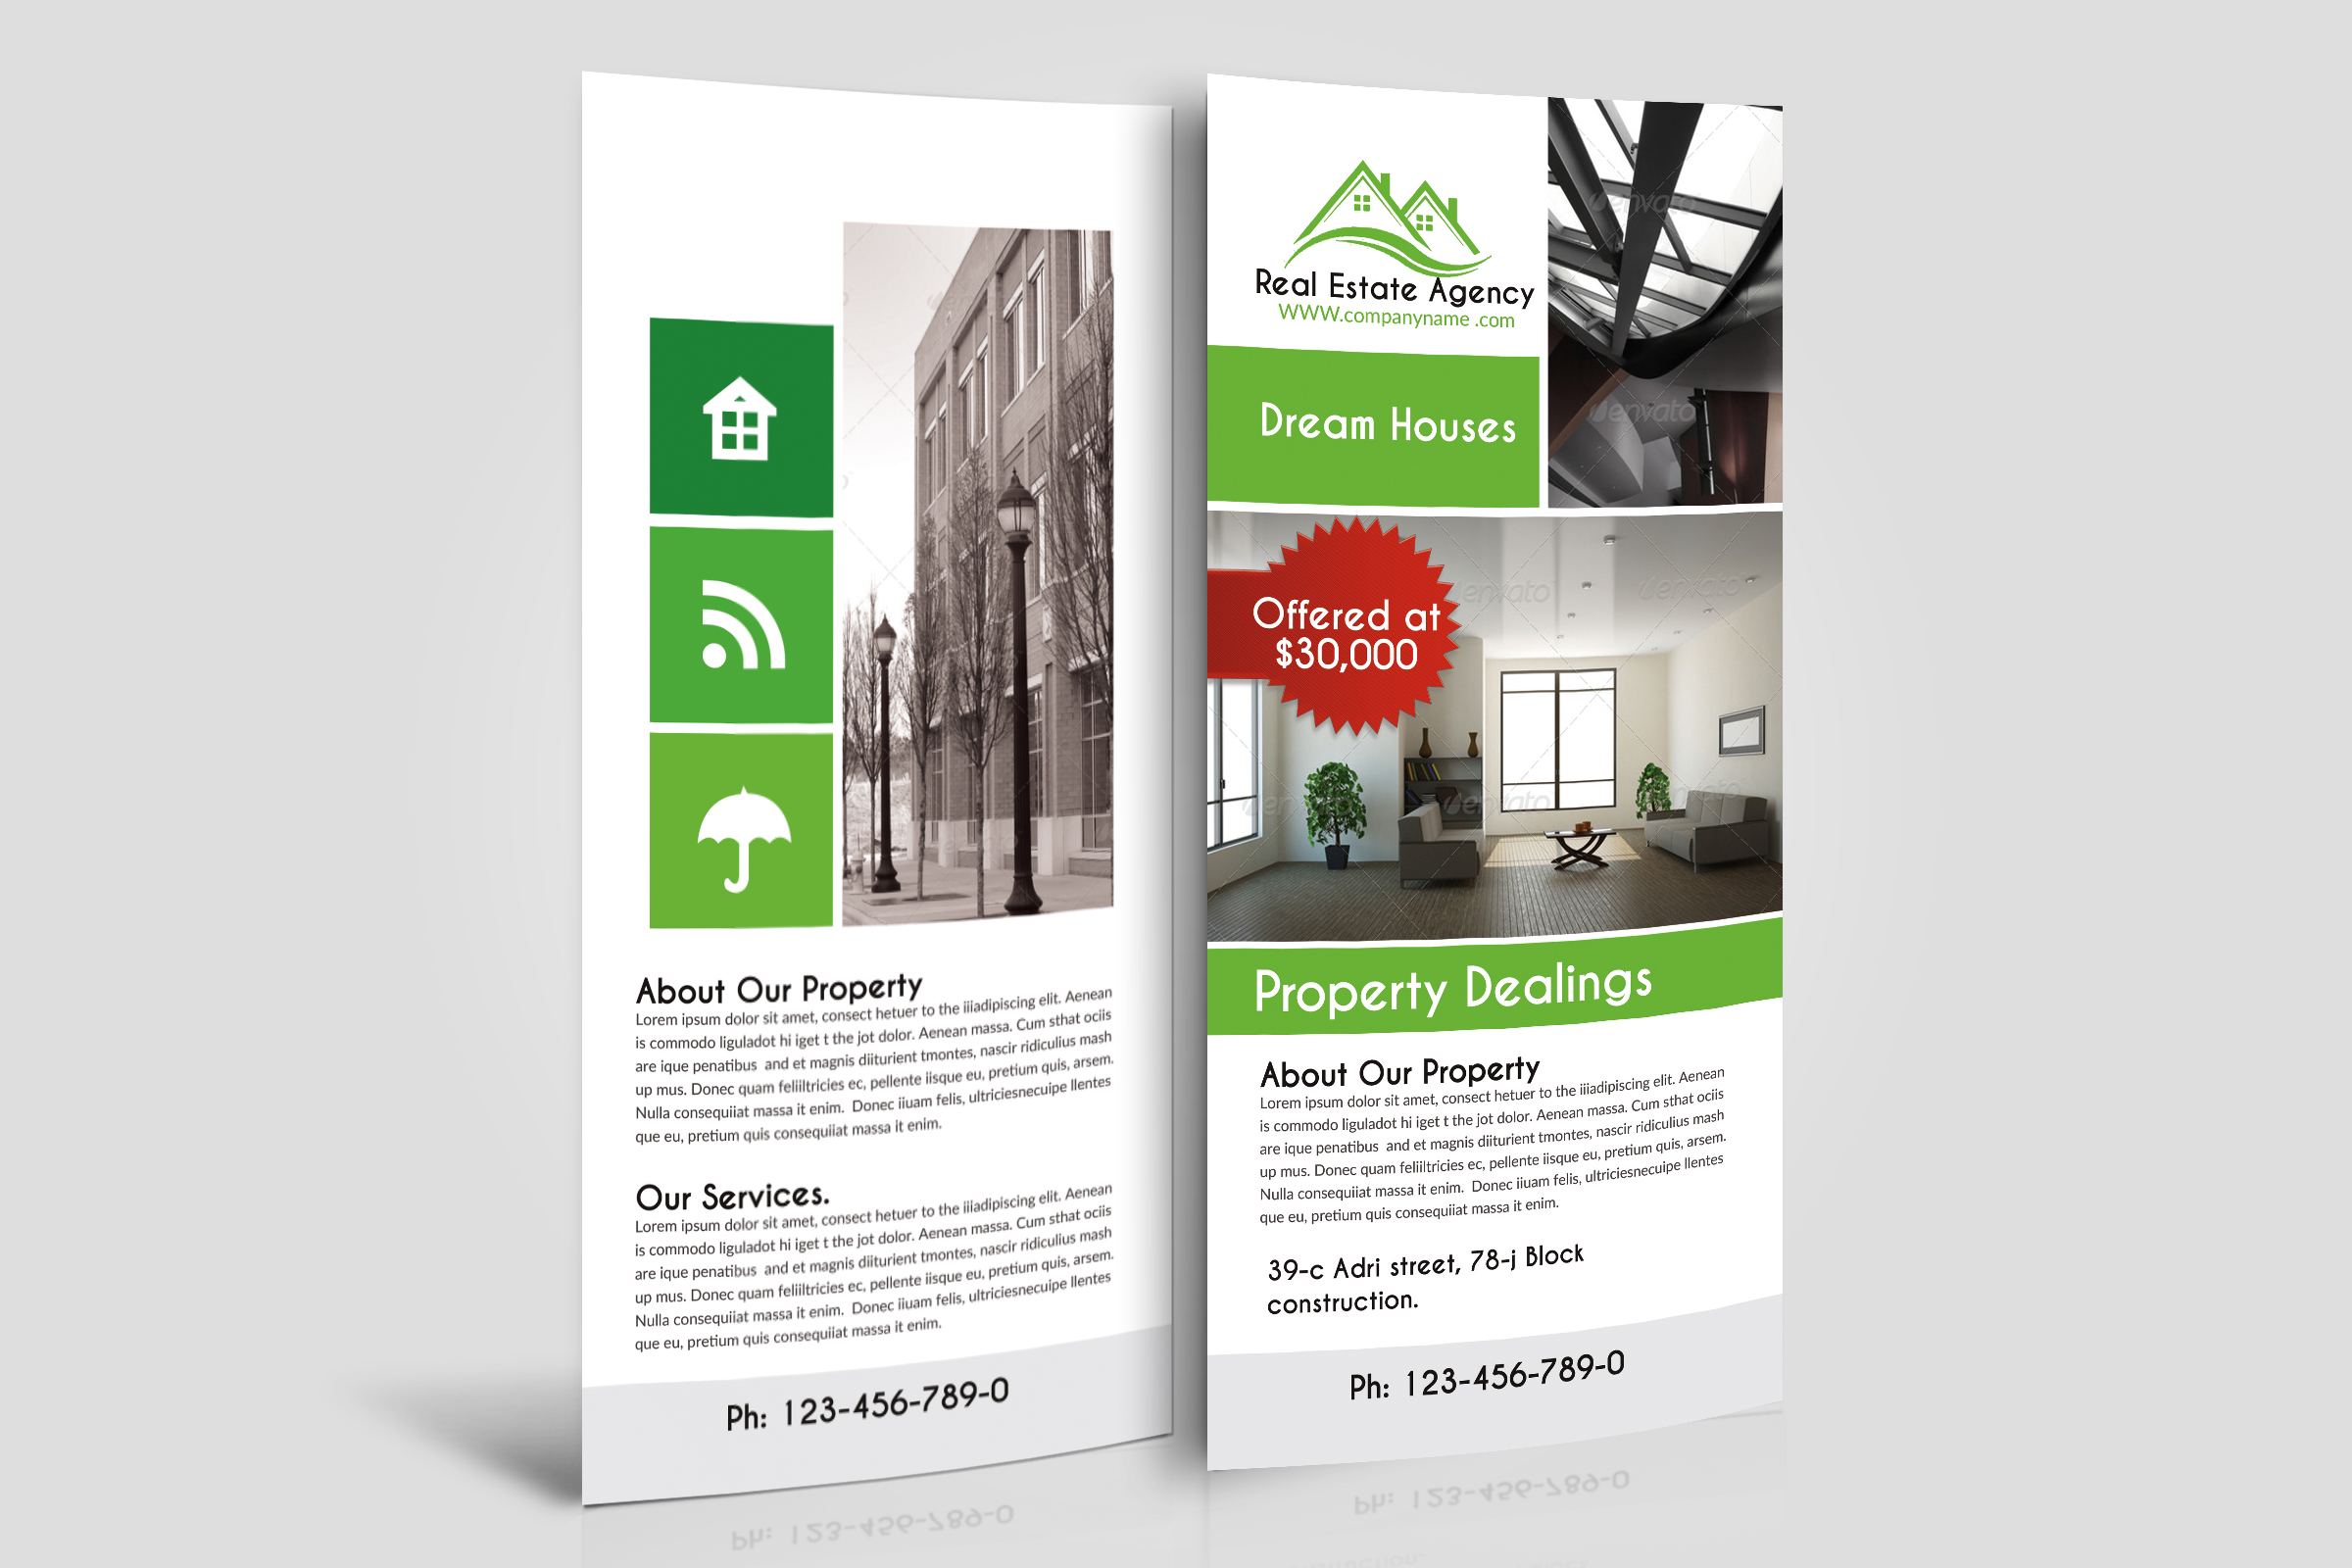 Real Estate Agency Rack Cards example image 1